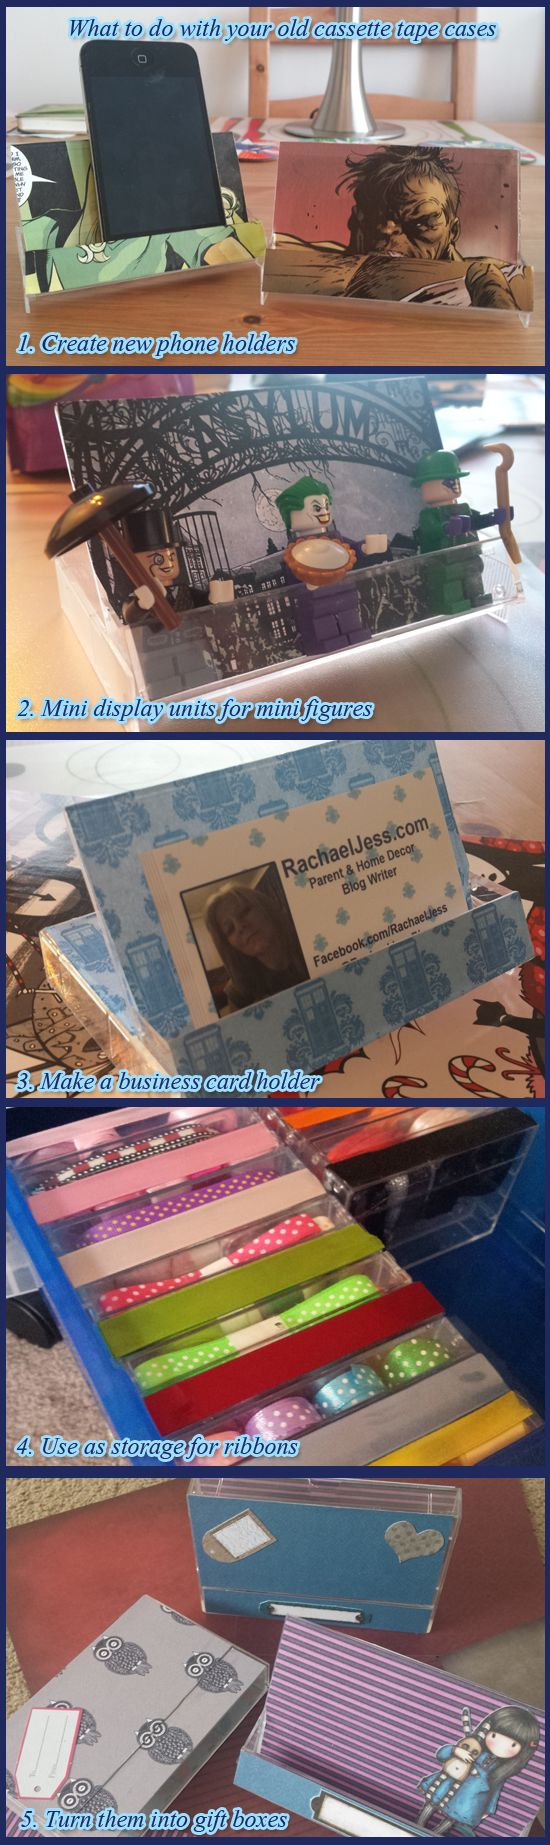 5 new uses for old cassette tape cases - Lego mini figures, Business card holder, phone holder, ribbon cases and gift boxes  Upcycling (the now hard to come by) old cassette tape cases - I had such fun - which is your favourite?